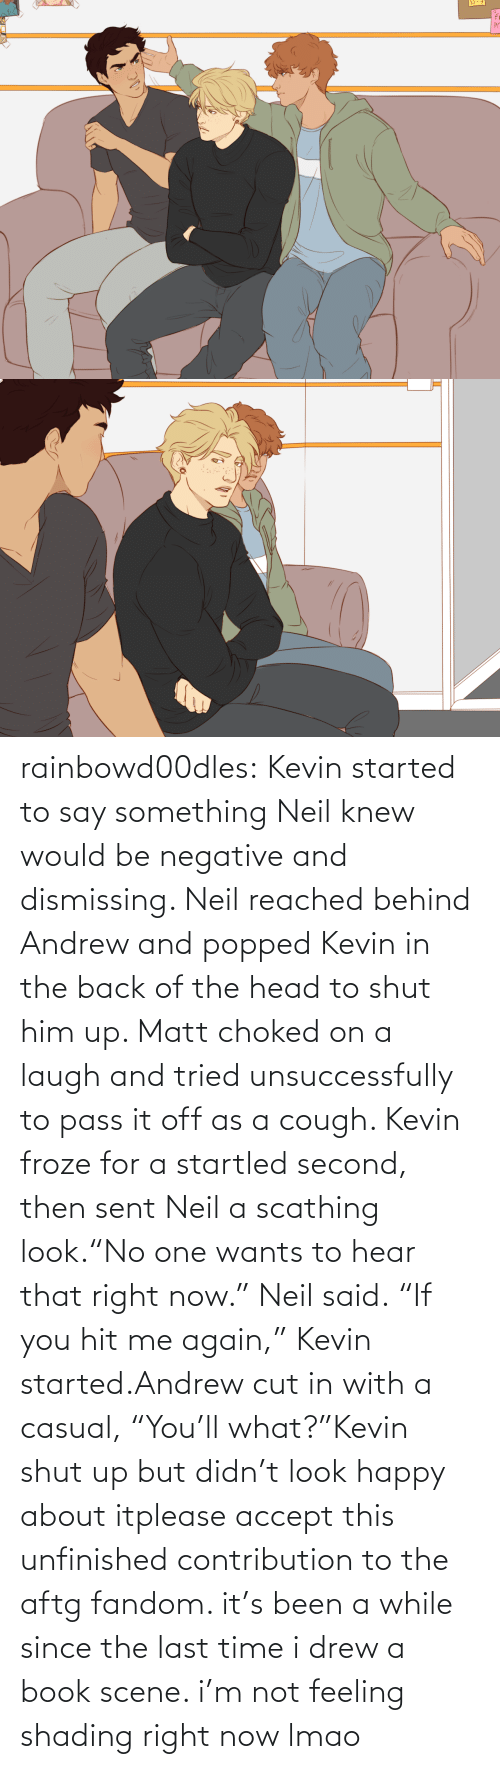 "laugh: rainbowd00dles:  Kevin started to say something Neil knew would be negative and dismissing. Neil reached behind Andrew and popped Kevin in the back of the head to shut him up. Matt choked on a laugh and tried unsuccessfully to pass it off as a cough. Kevin froze for a startled second, then sent Neil a scathing look.""No one wants to hear that right now."" Neil said. ""If you hit me again,"" Kevin started.Andrew cut in with a casual, ""You'll what?""Kevin shut up but didn't look happy about itplease accept this unfinished contribution to the aftg fandom. it's been a while since the last time i drew a book scene. i'm not feeling shading right now lmao"